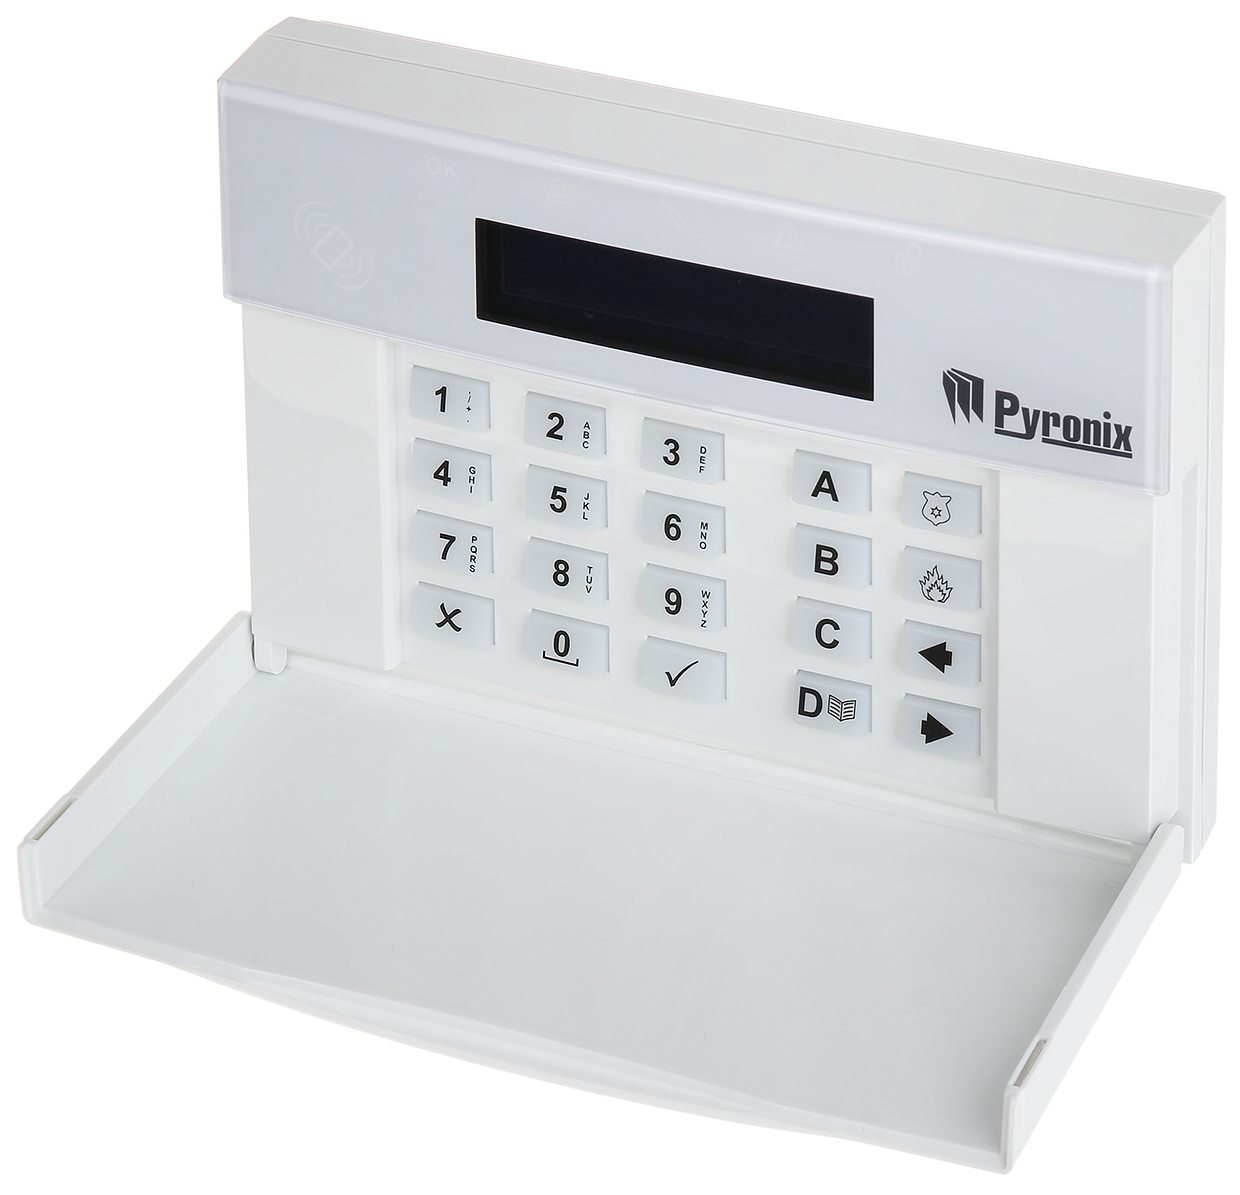 Picture of FPPCX-LCD/EX LCD PYRONIX KEYPAD